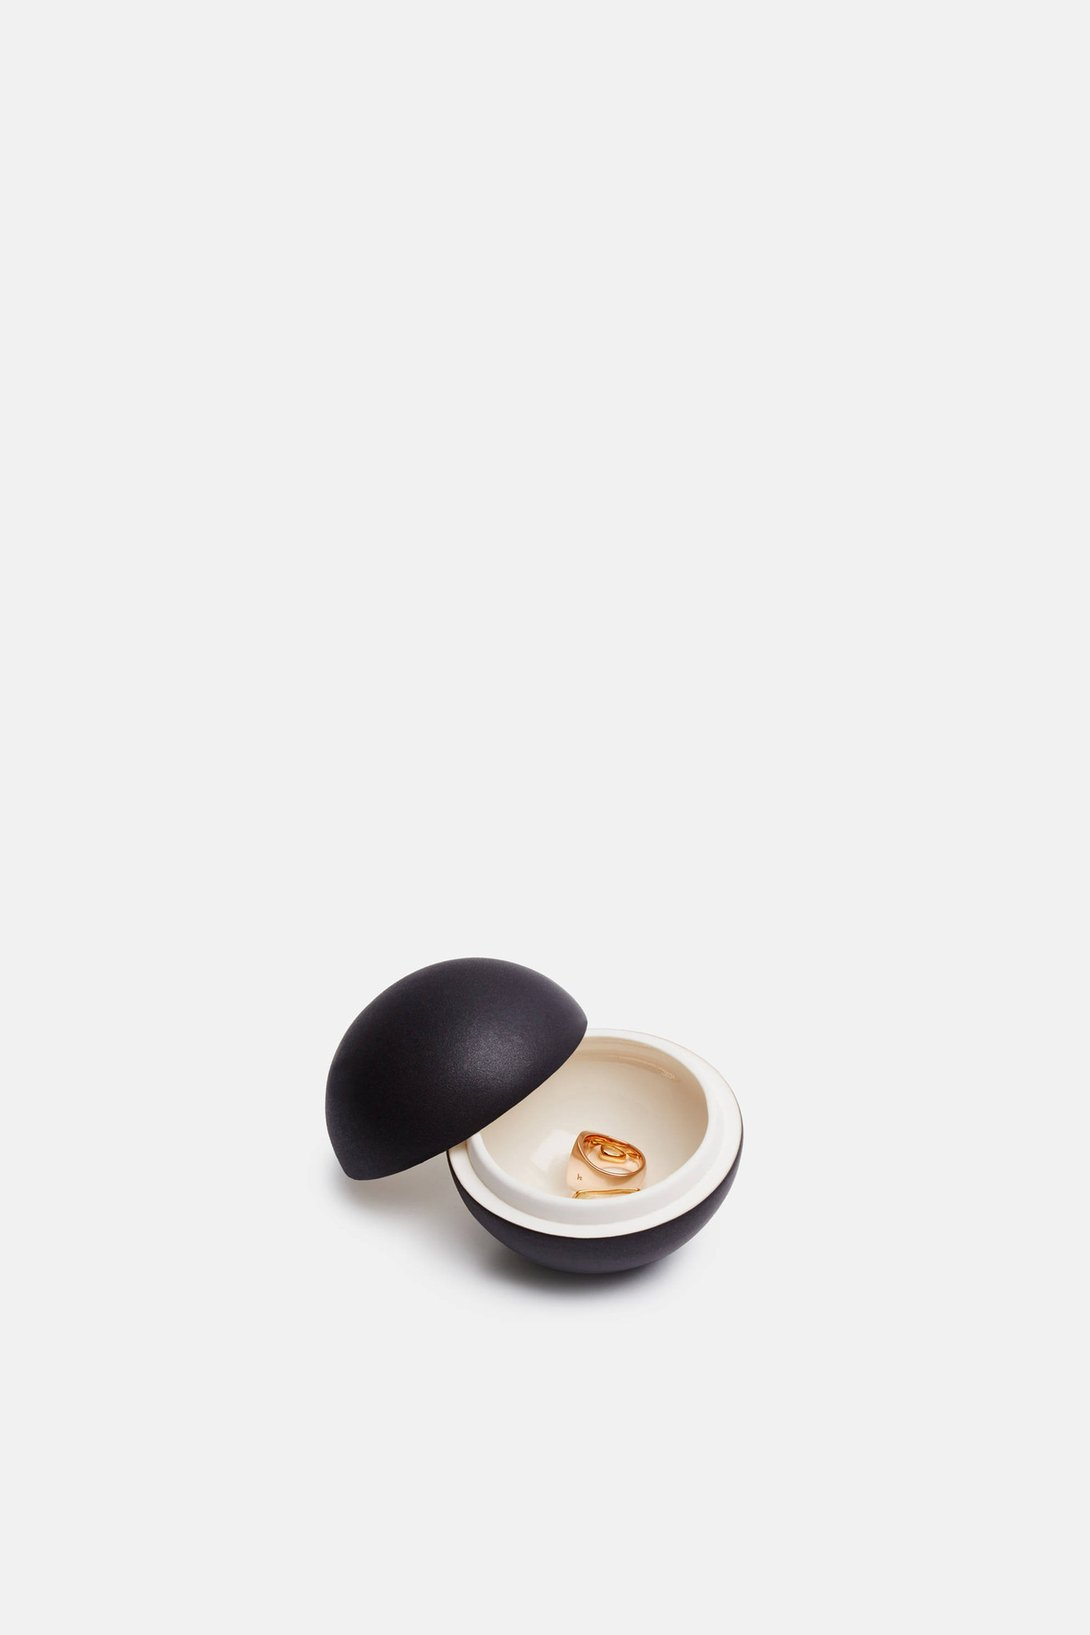 JULIE BONDE Matte Black Mini Spherical Lidded Container  Handmade bonbonnière is both functional and decorative: a bisected sphere of black porcelain that opens to reveal a glossy, cream-hued cache for treasures or treats.